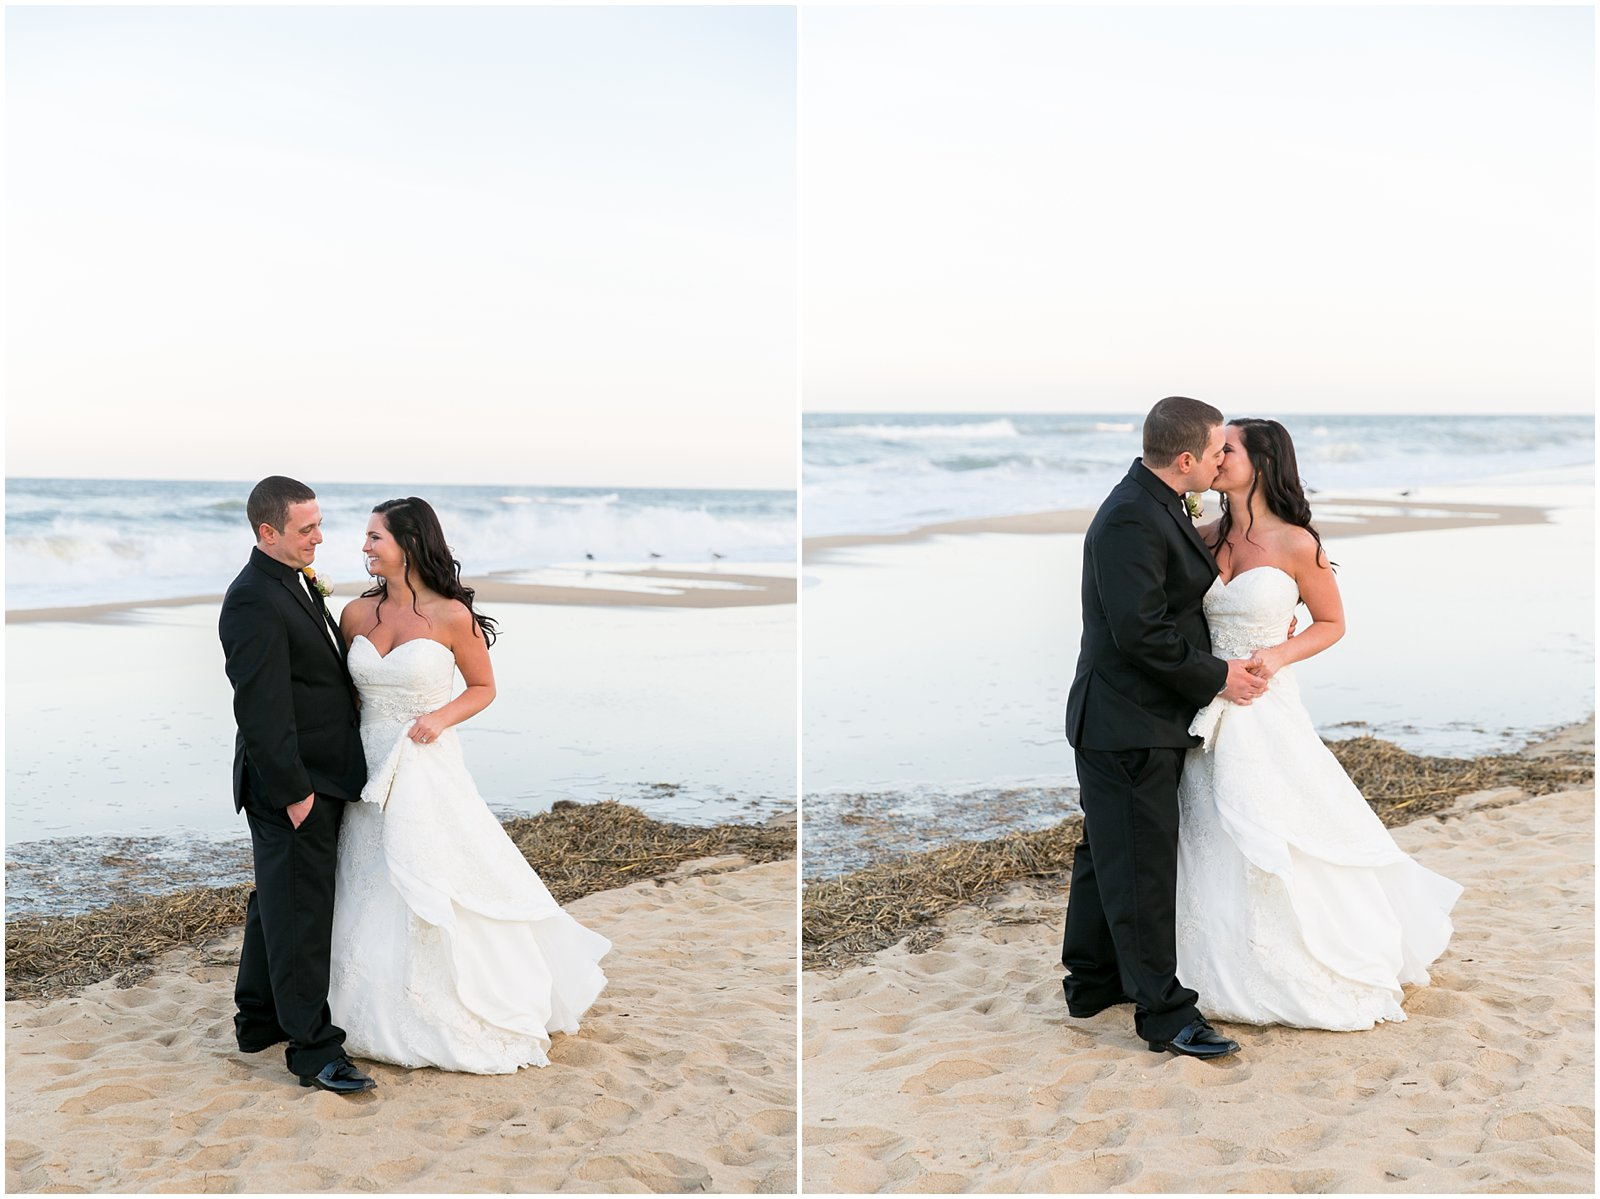 jessica_ryan_photography_wedding_virginia_beach_virginia_wedding_photographer_candid_wedding_photography_lifestyle_photojournalistic_real_moments_0161